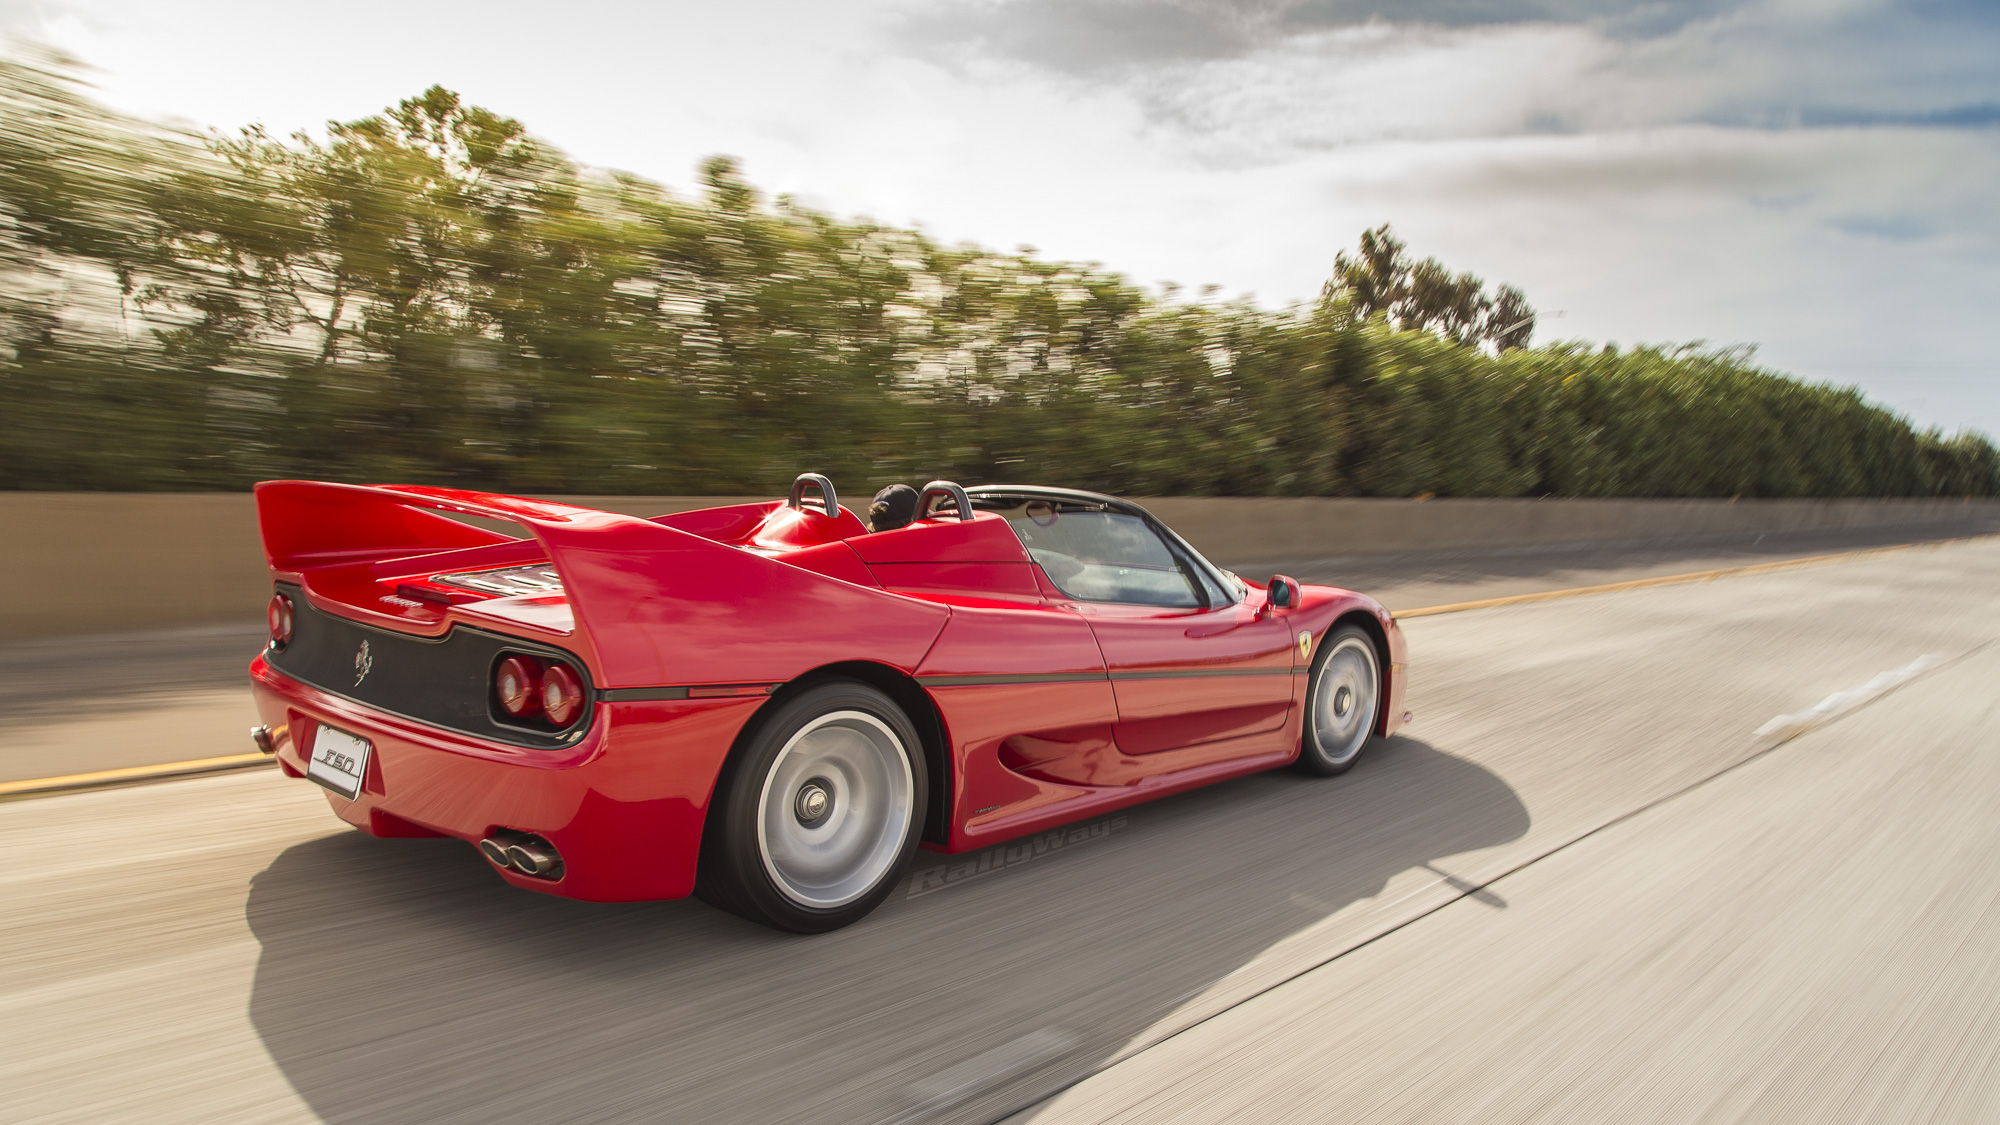 Ceramic Pro Ferrari F50 by RallyWays